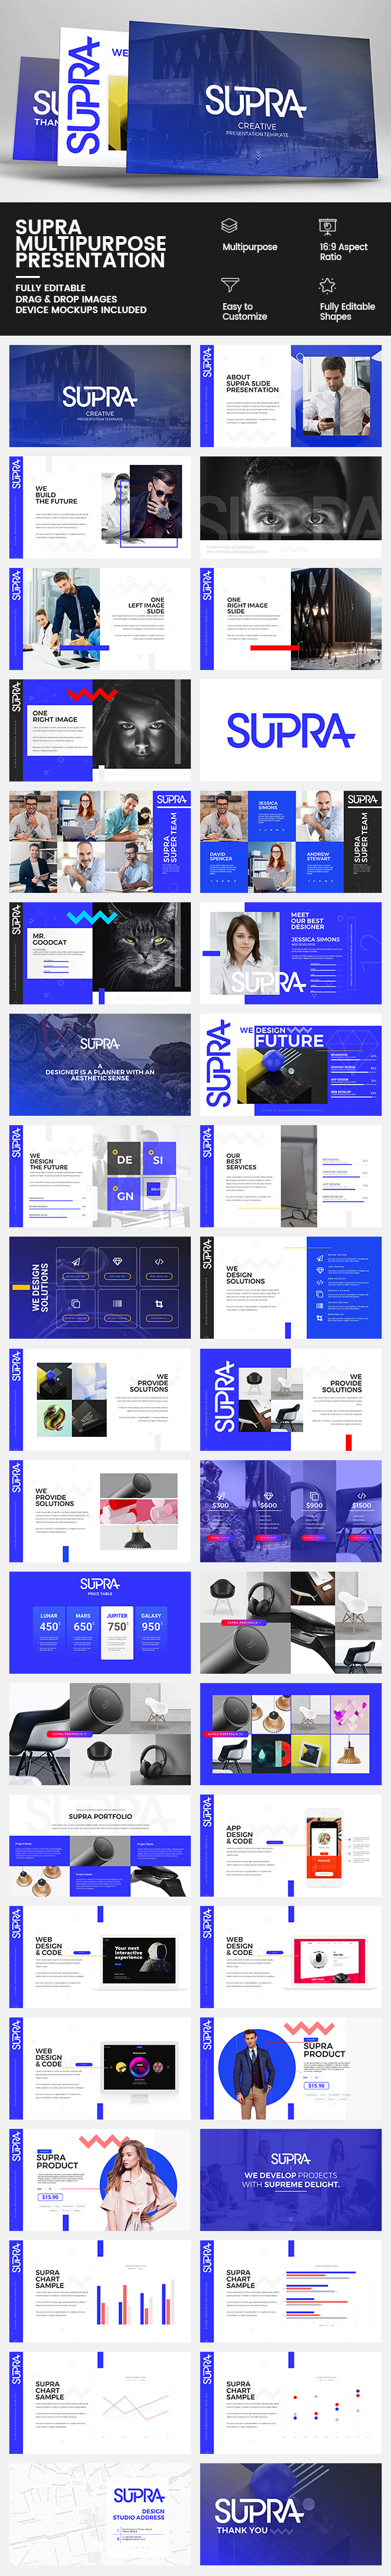 GraphicRiver Supra Multipurpose Keynote Presentation 20370683